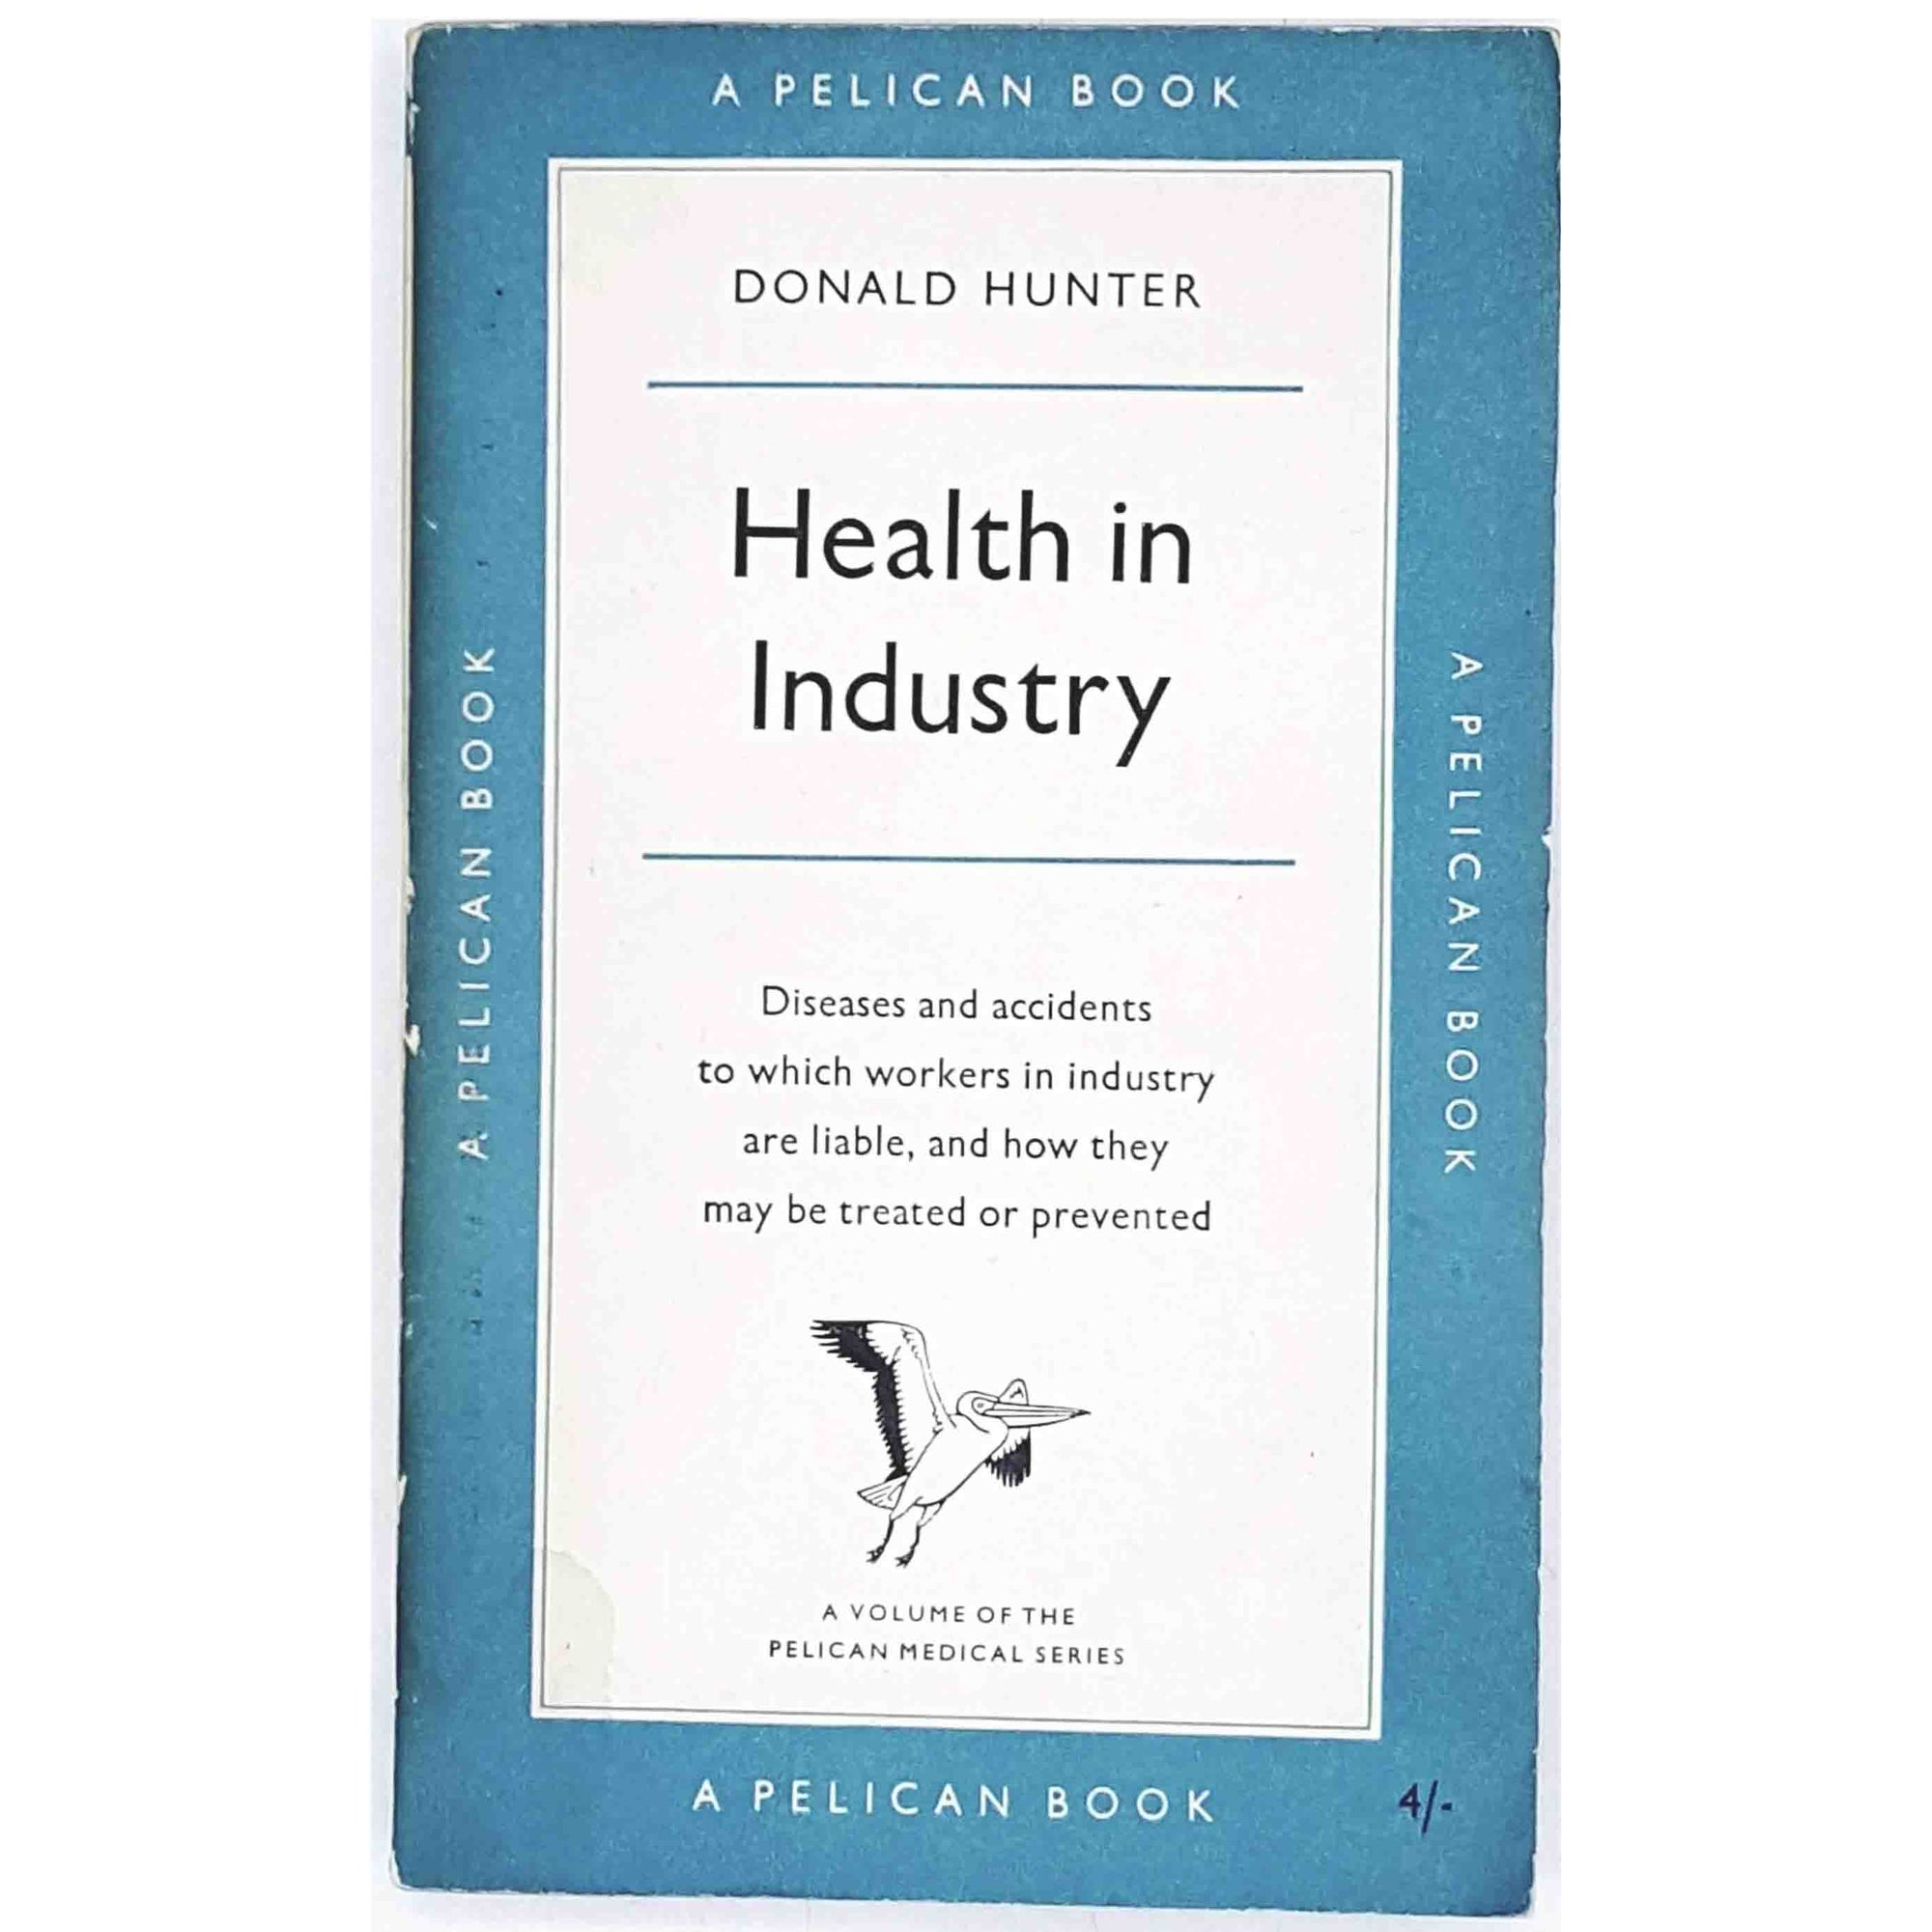 vintage-pelican-health-in-industry-by-donald-hunter-1959-antique-pale-blue-country-house-library